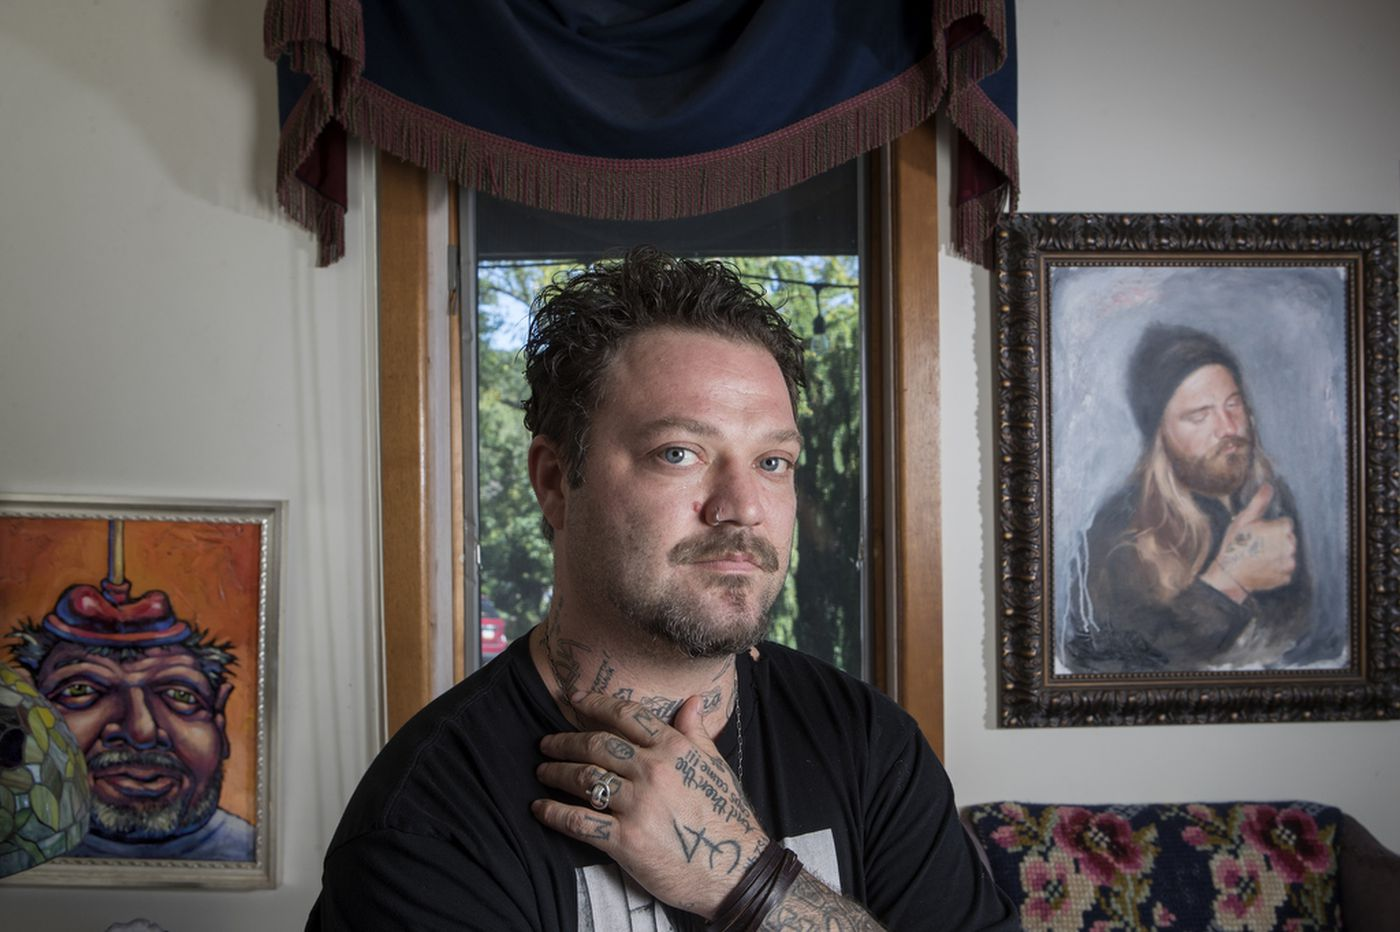 Bam Margera sends update from rehab: 'I'm 39 years old, the party is over'